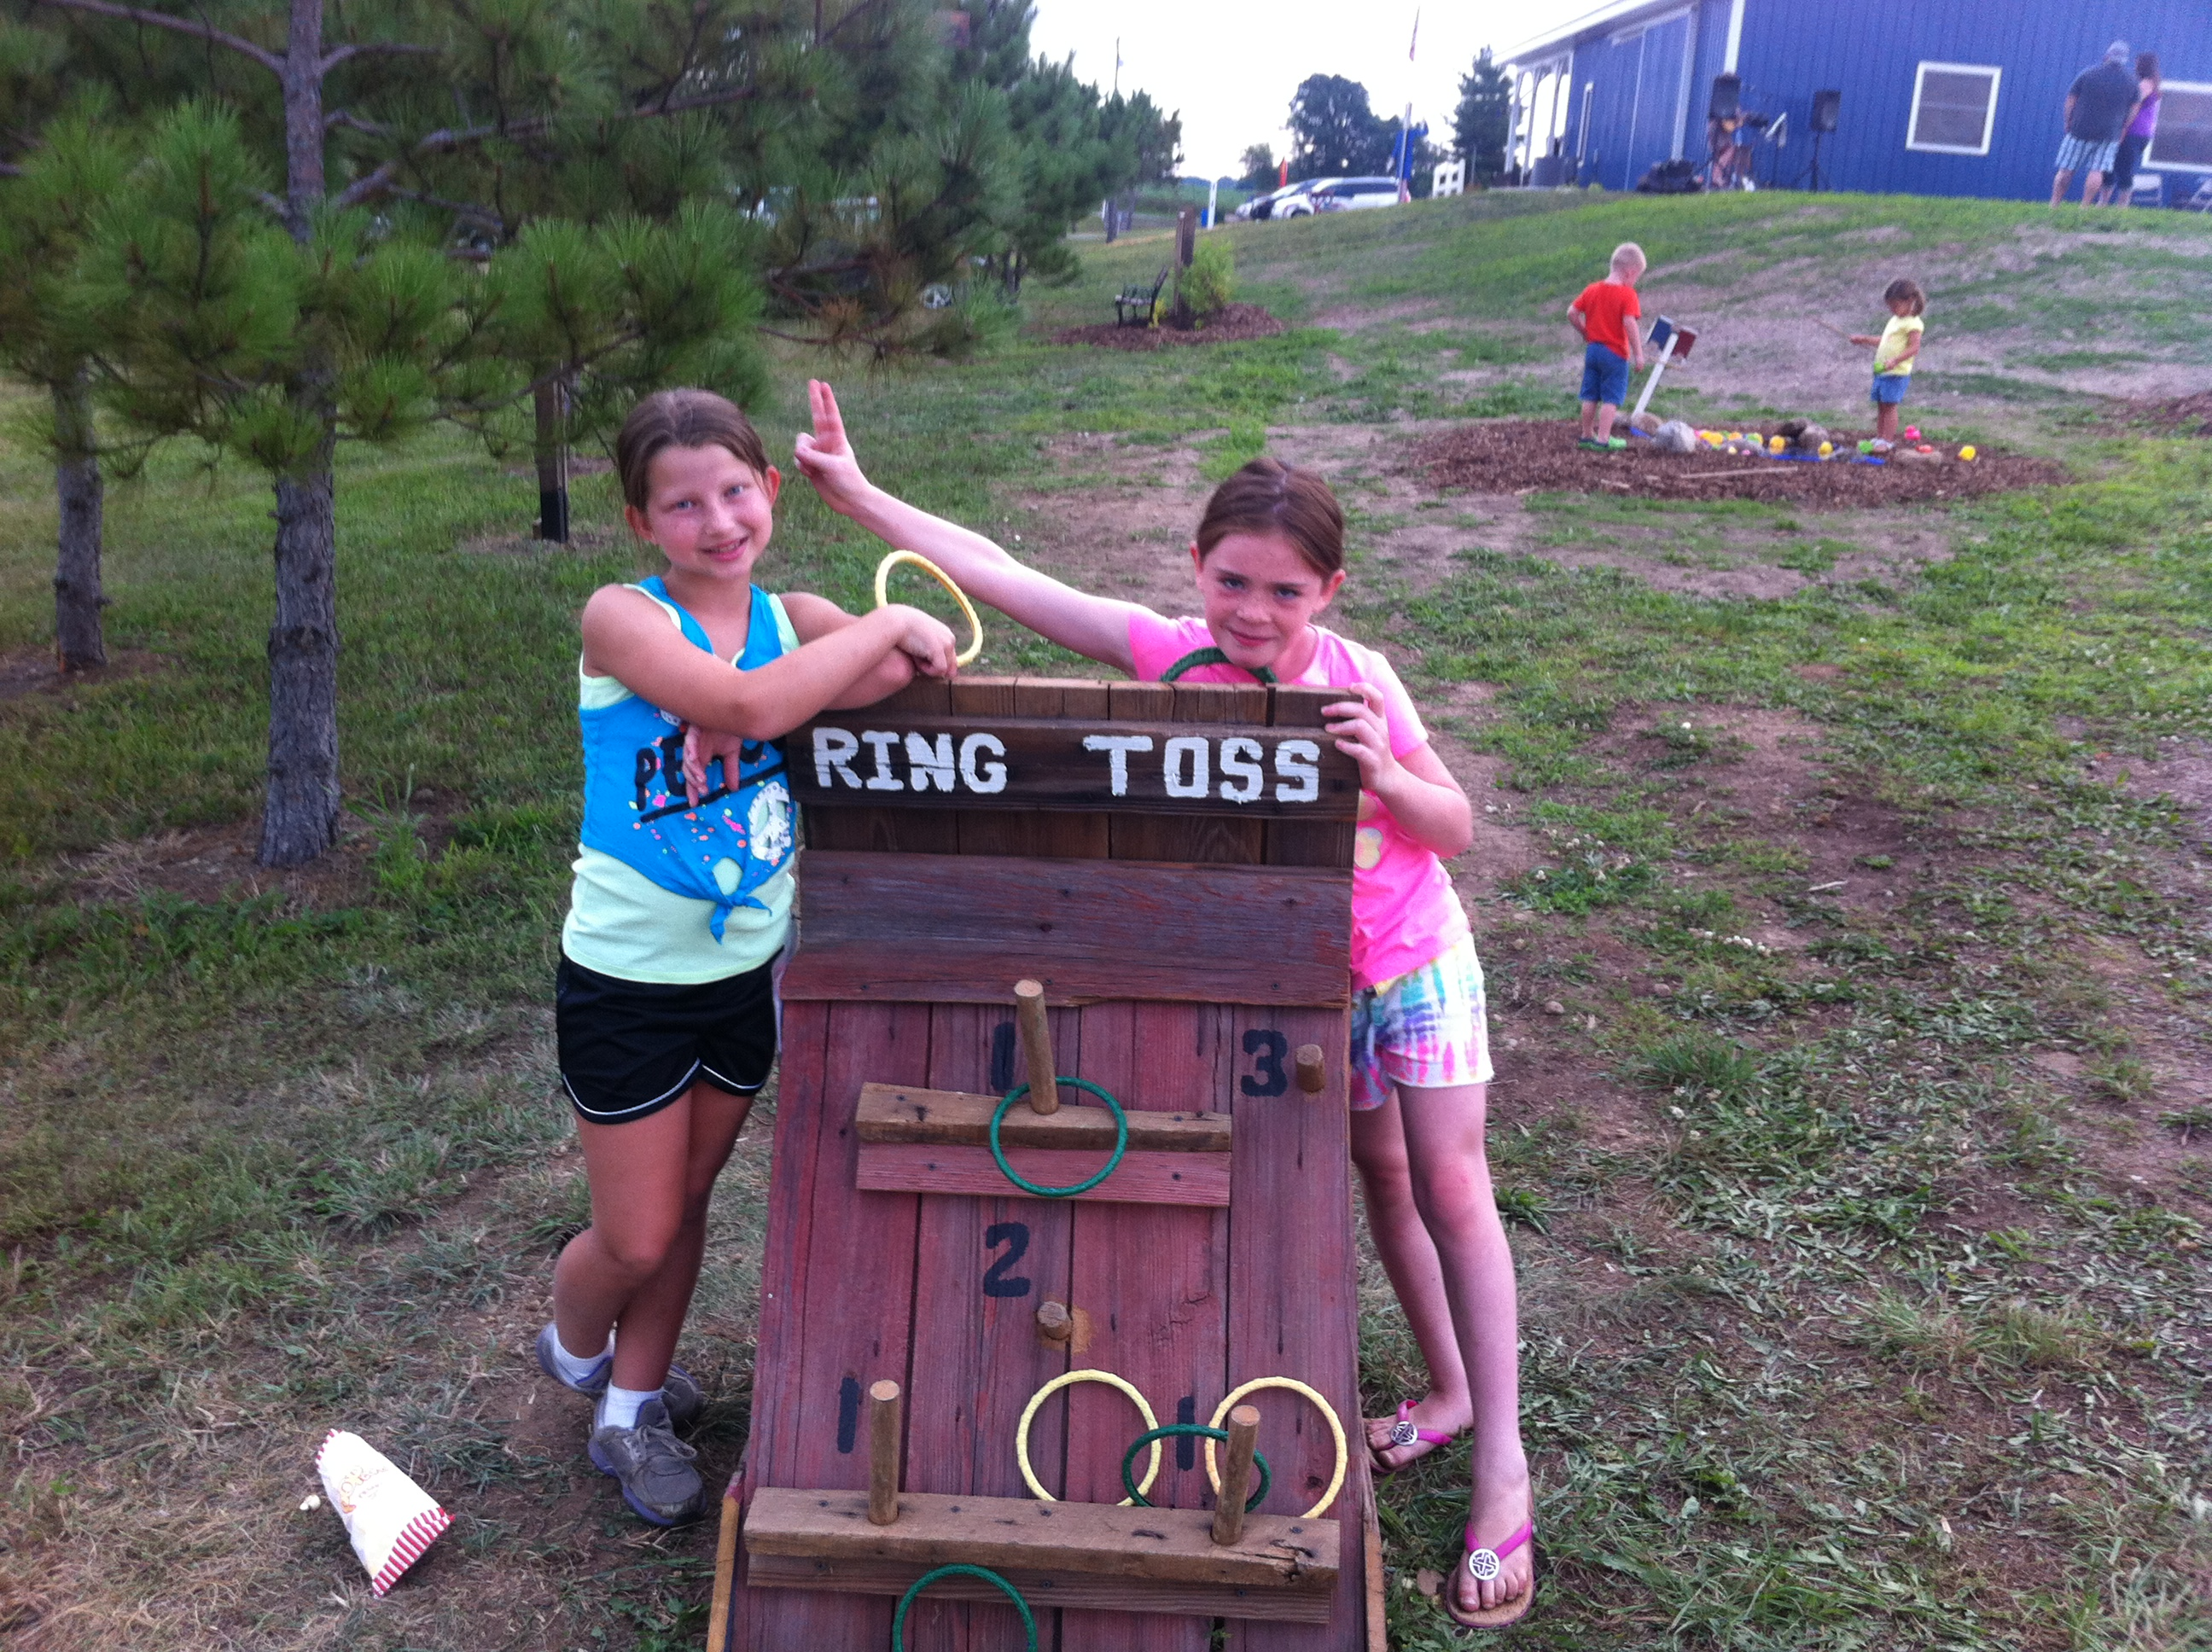 Ring Toss can get competitive...